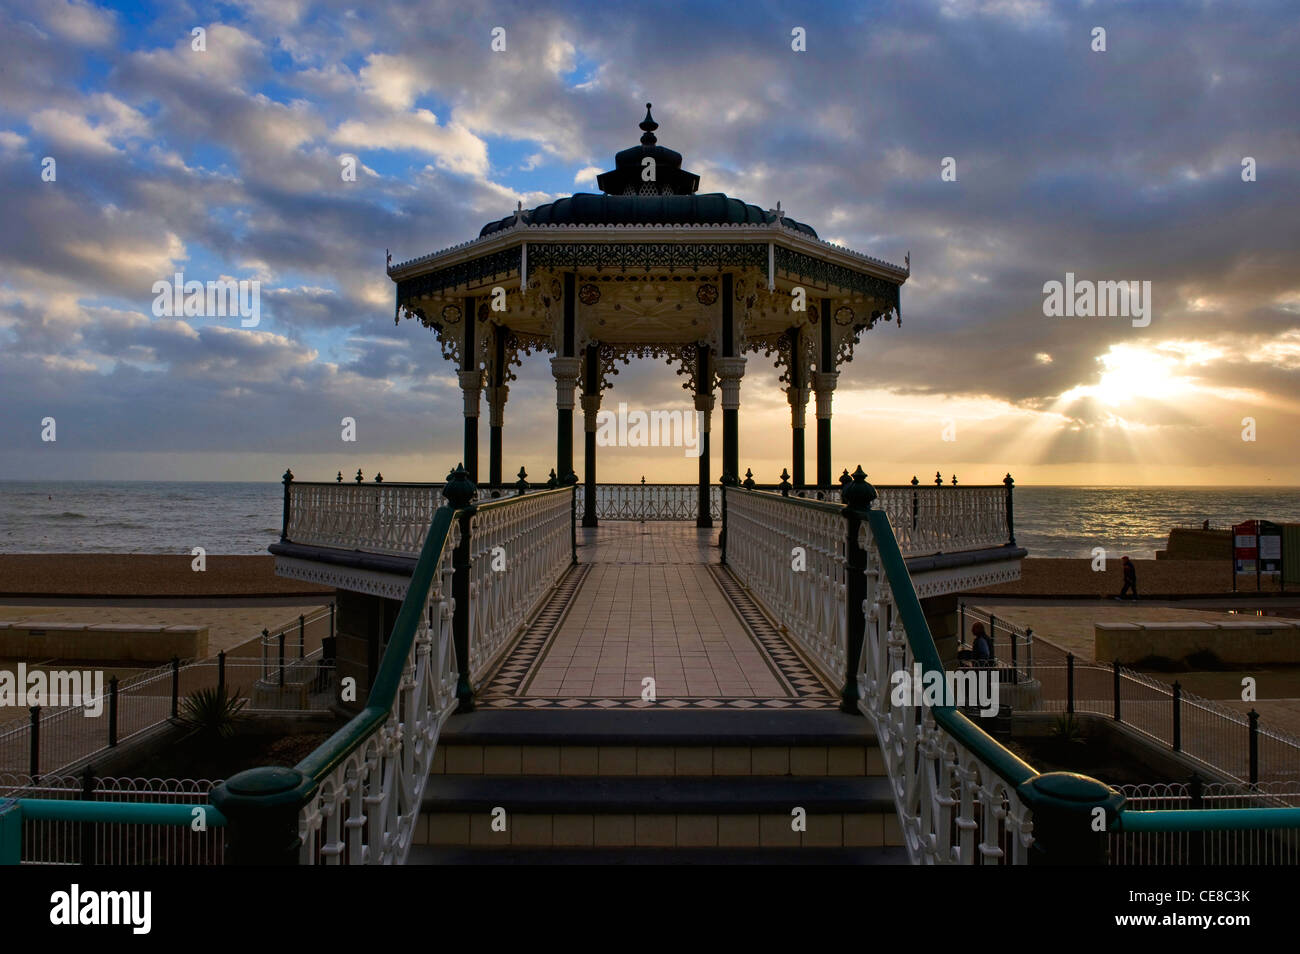 The Bandstand, Brighton, England - Stock Image